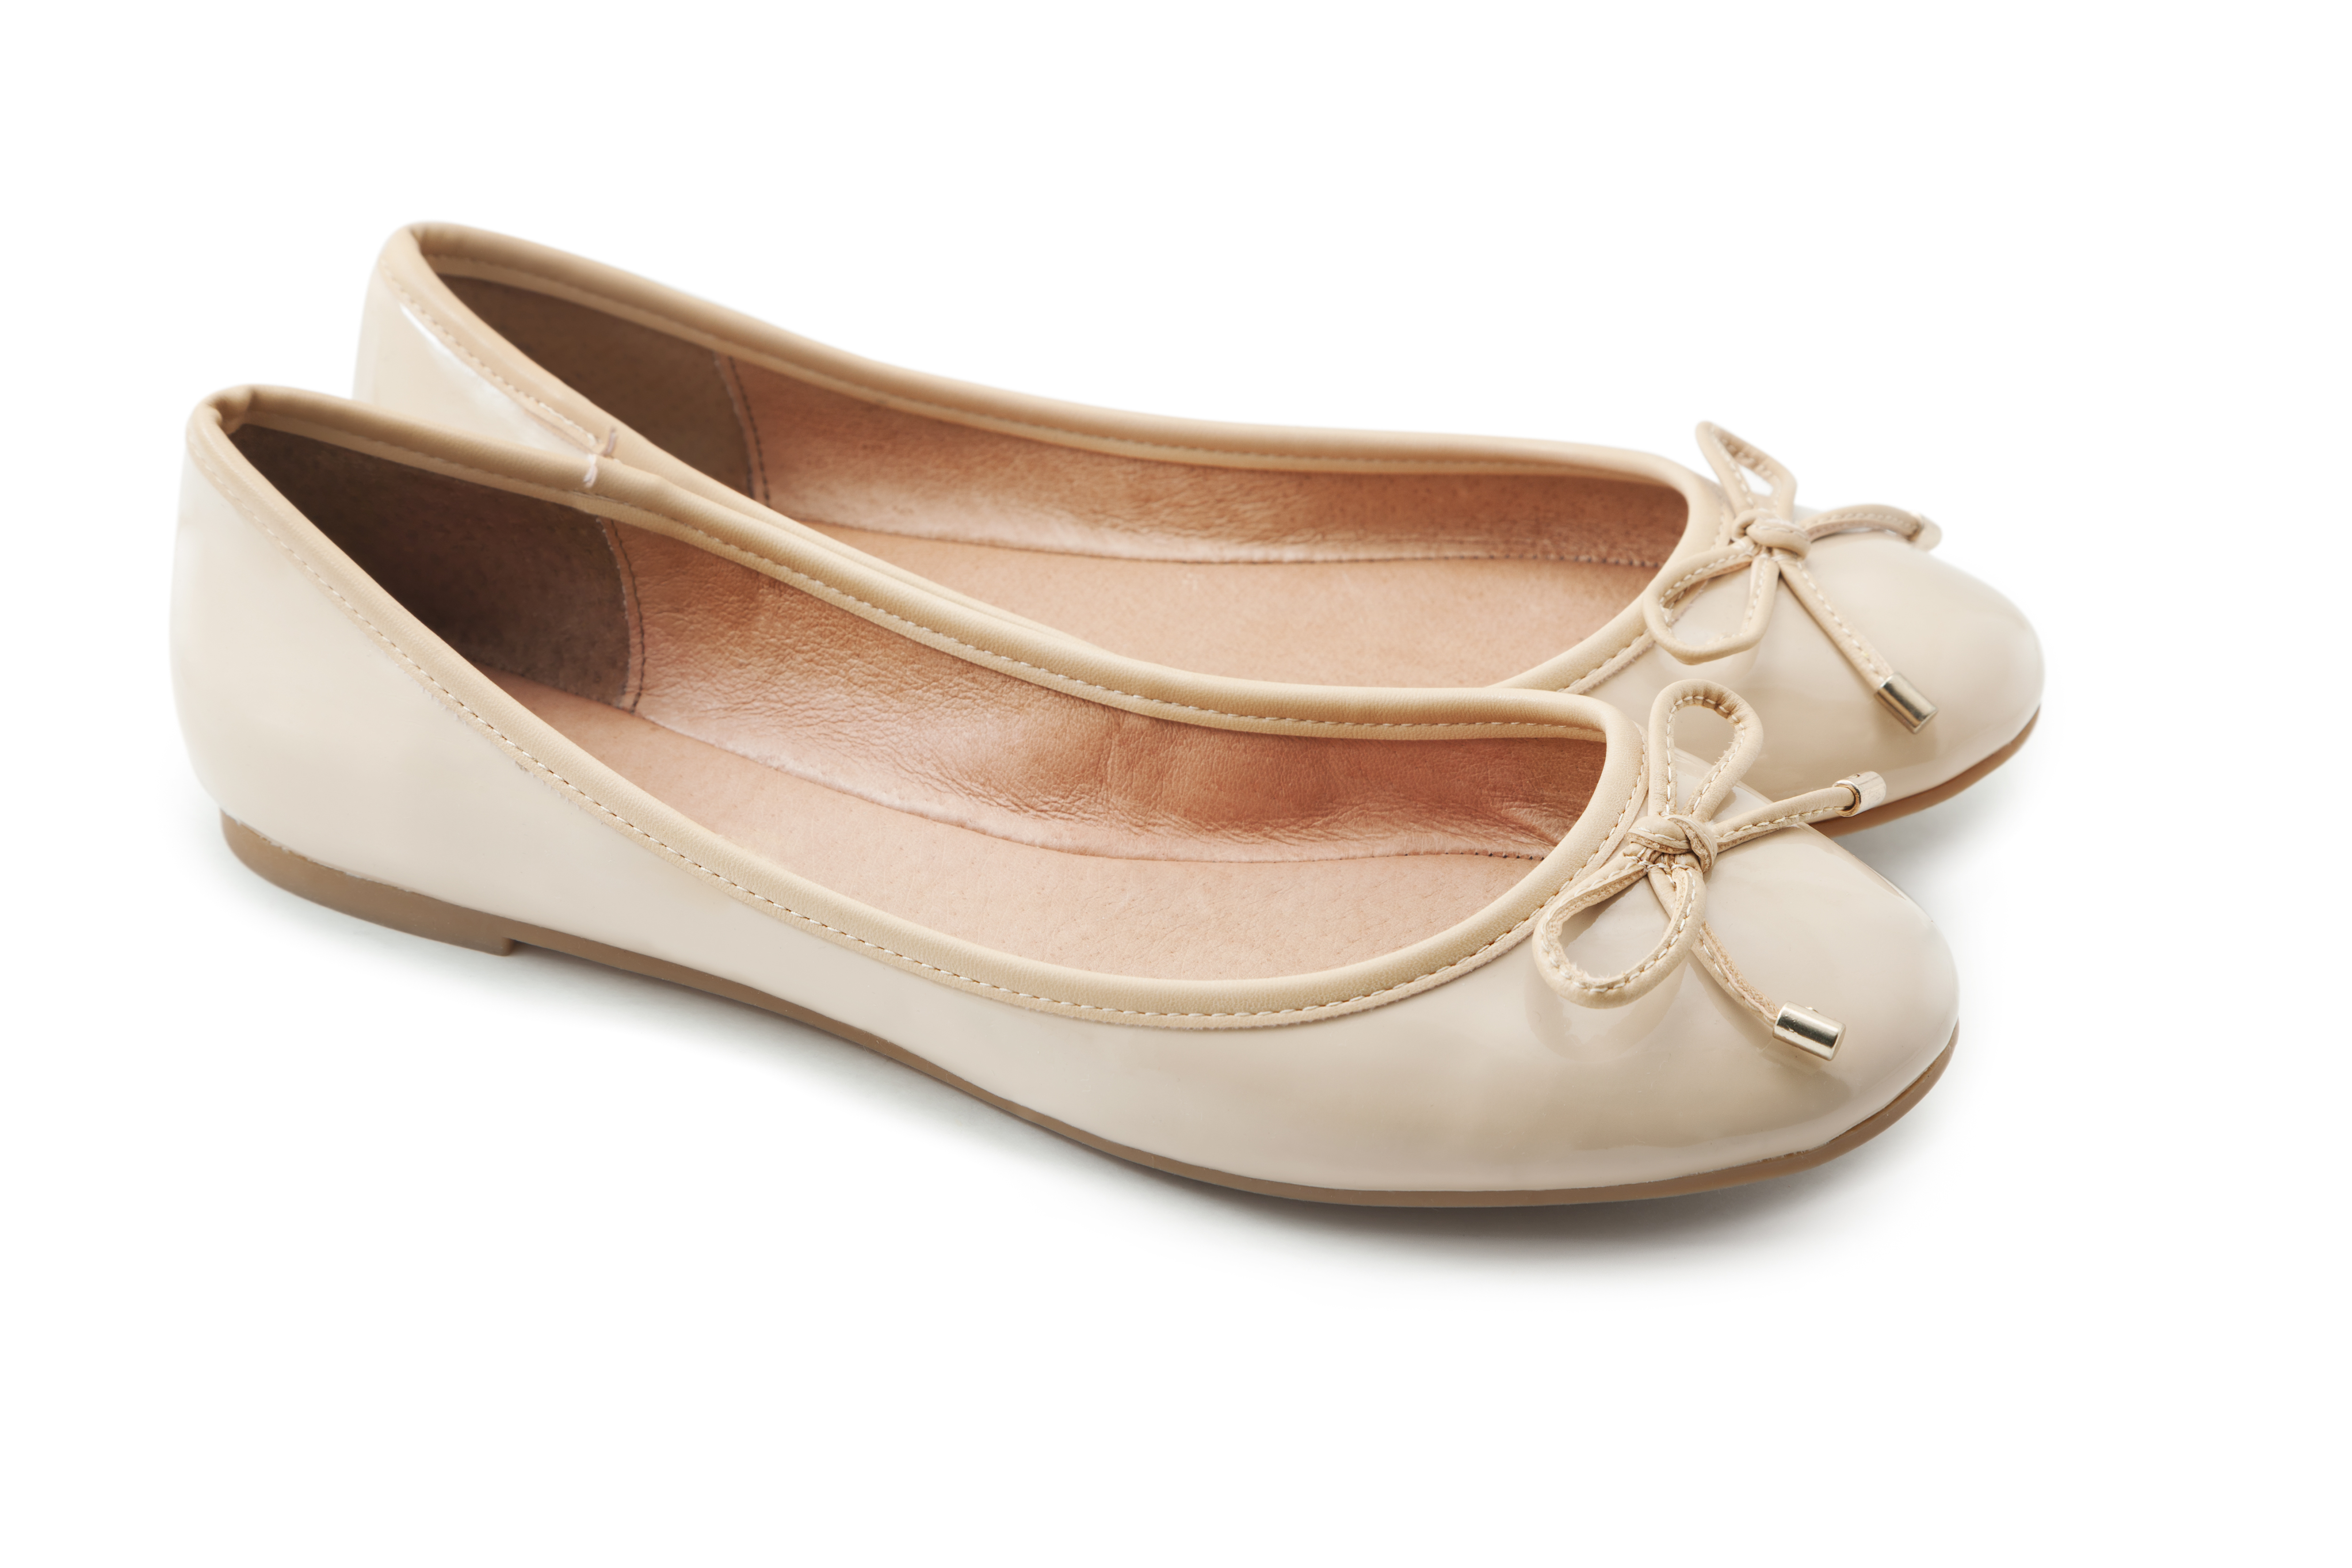 new product a6815 063be Ballerina Schuhe & Ballerinen | Schuhe24